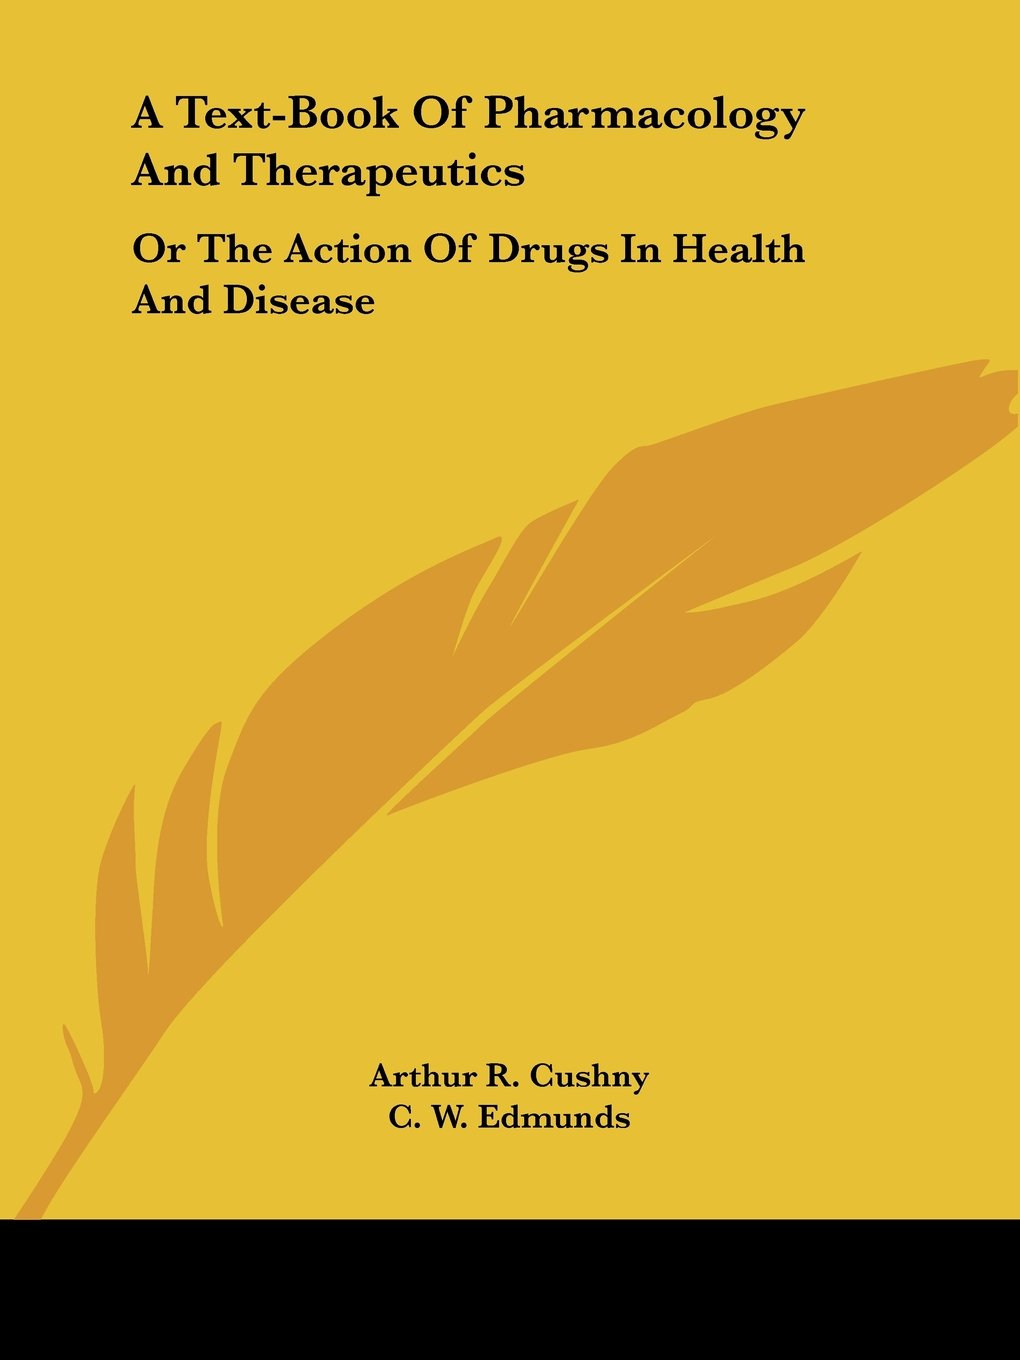 Download A Text-Book Of Pharmacology And Therapeutics: Or The Action Of Drugs In Health And Disease pdf